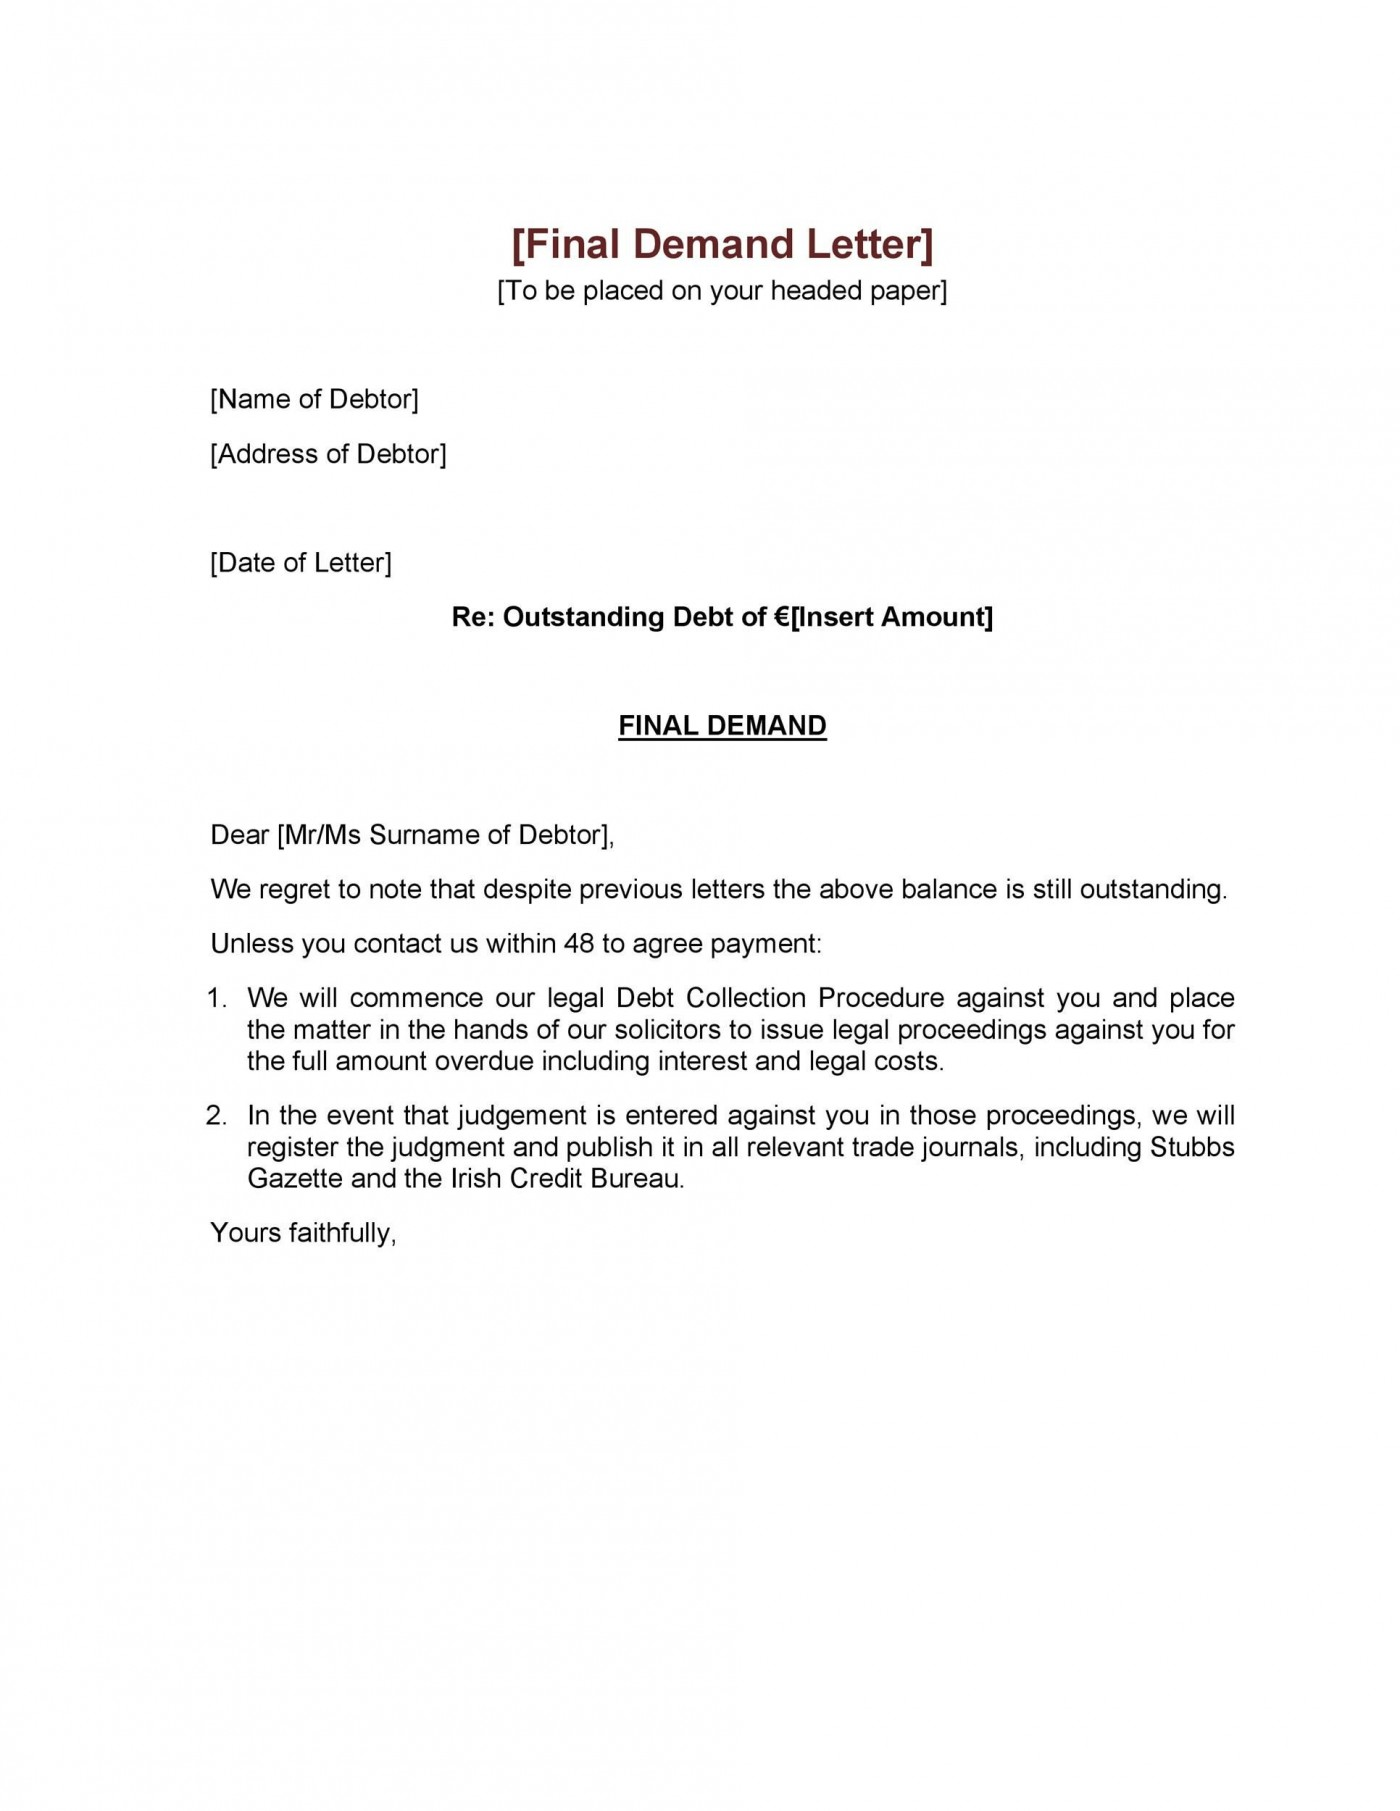 006 Astounding Final Payment Demand Letter Template Inspiration  For Uk1400